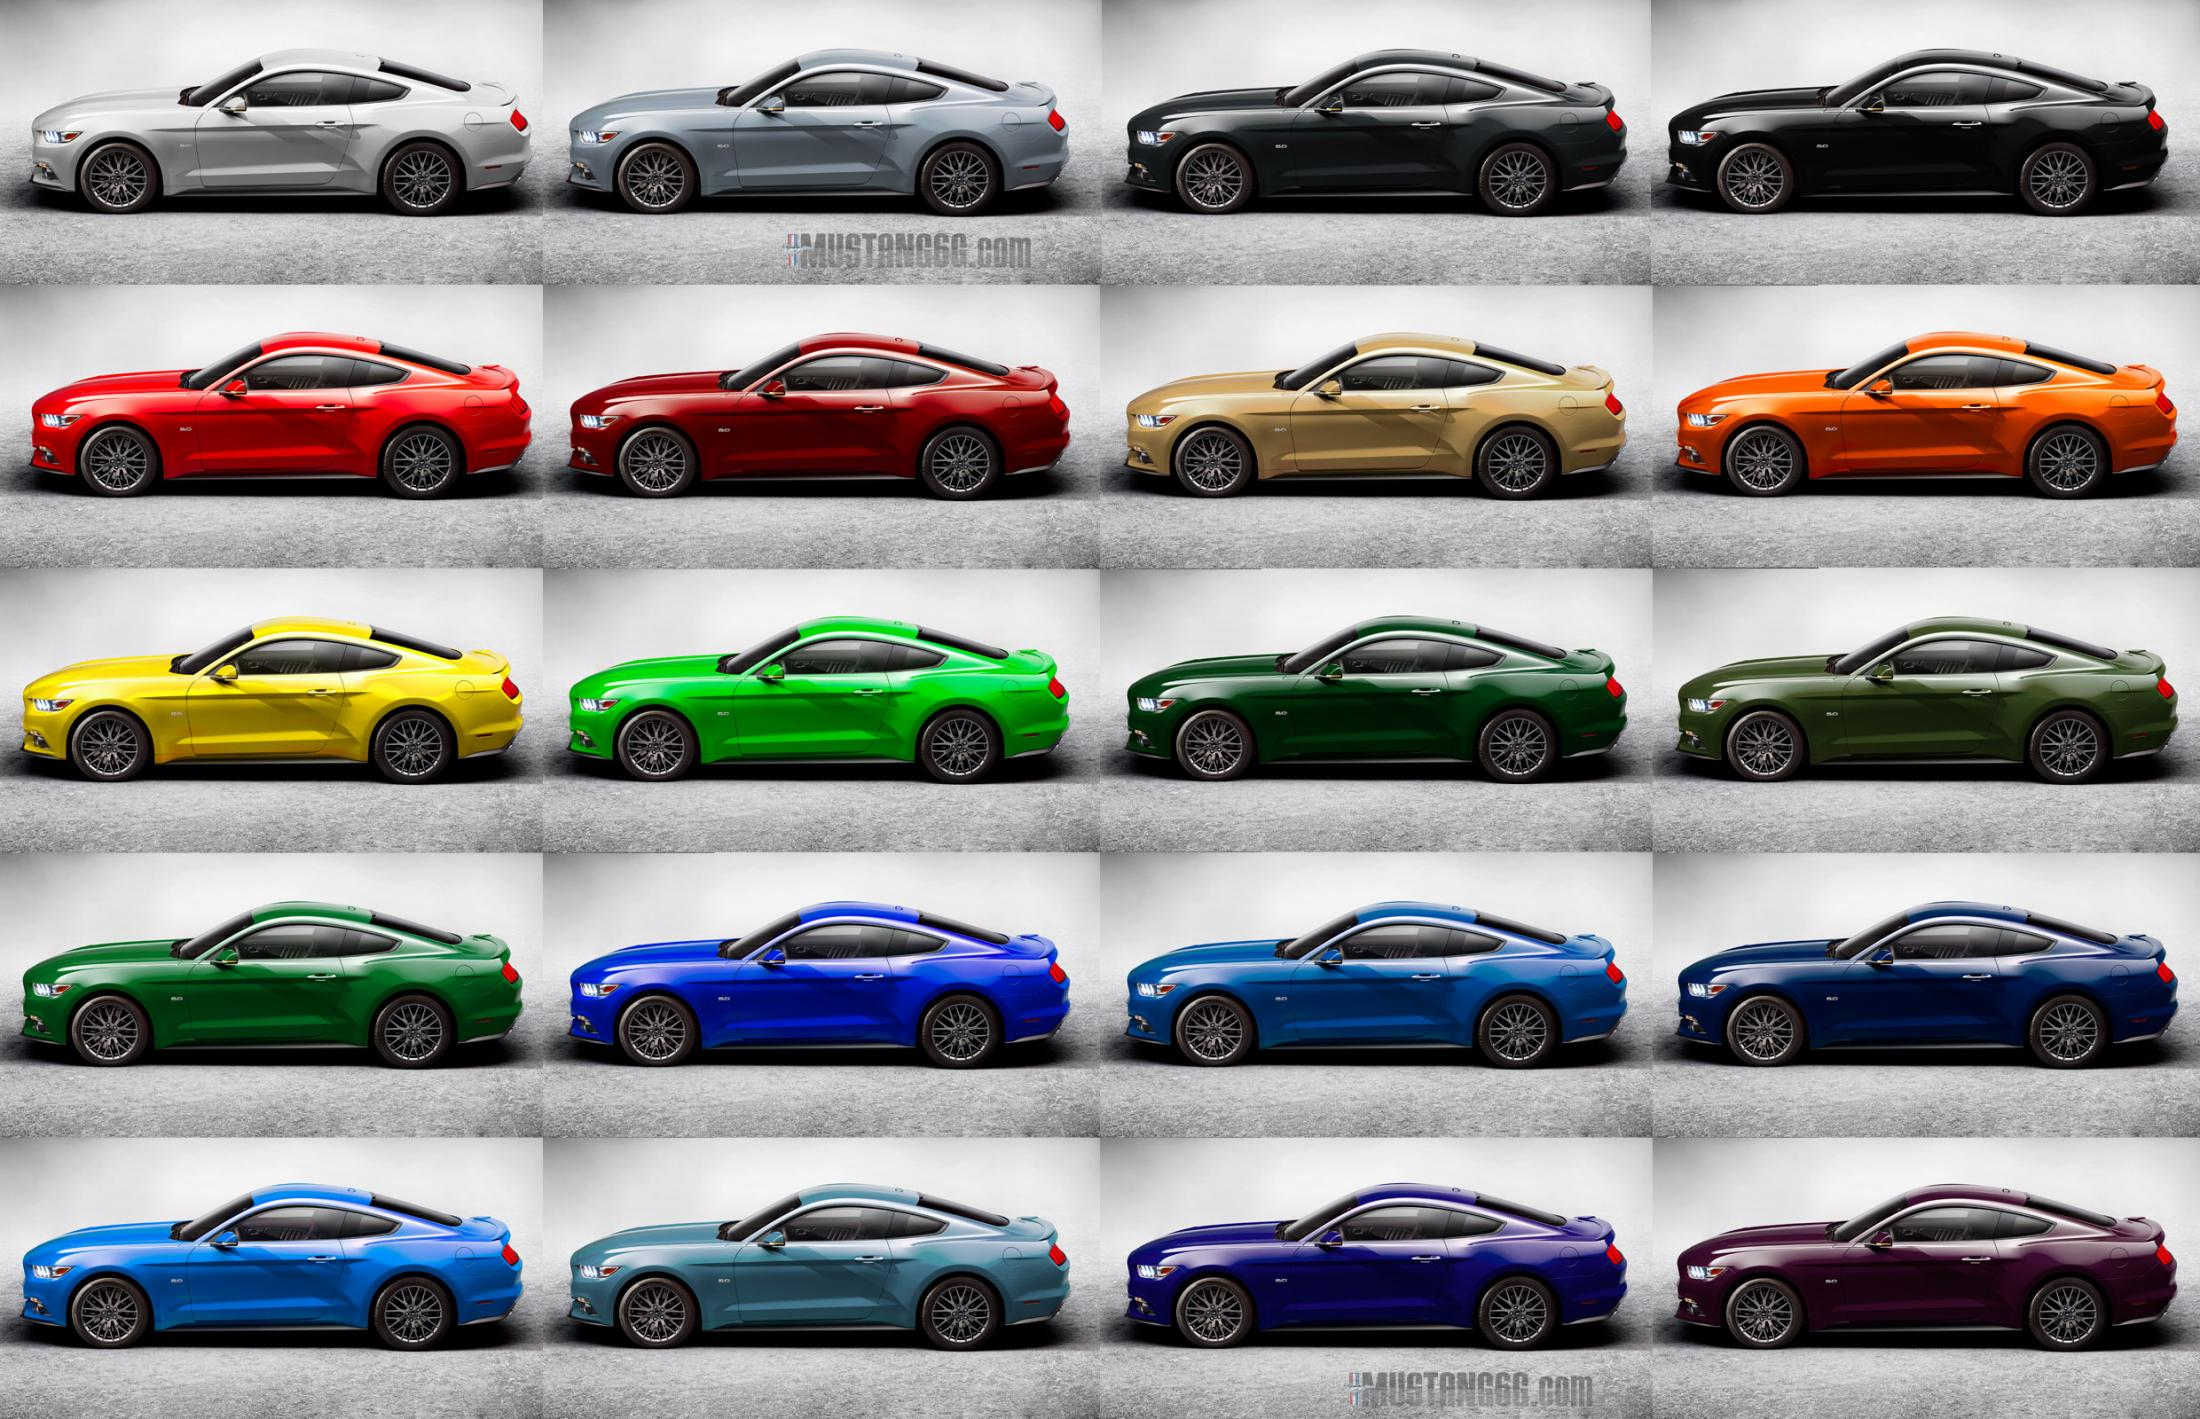 official 2015 ford mustang website now open 2015 s550 mustang